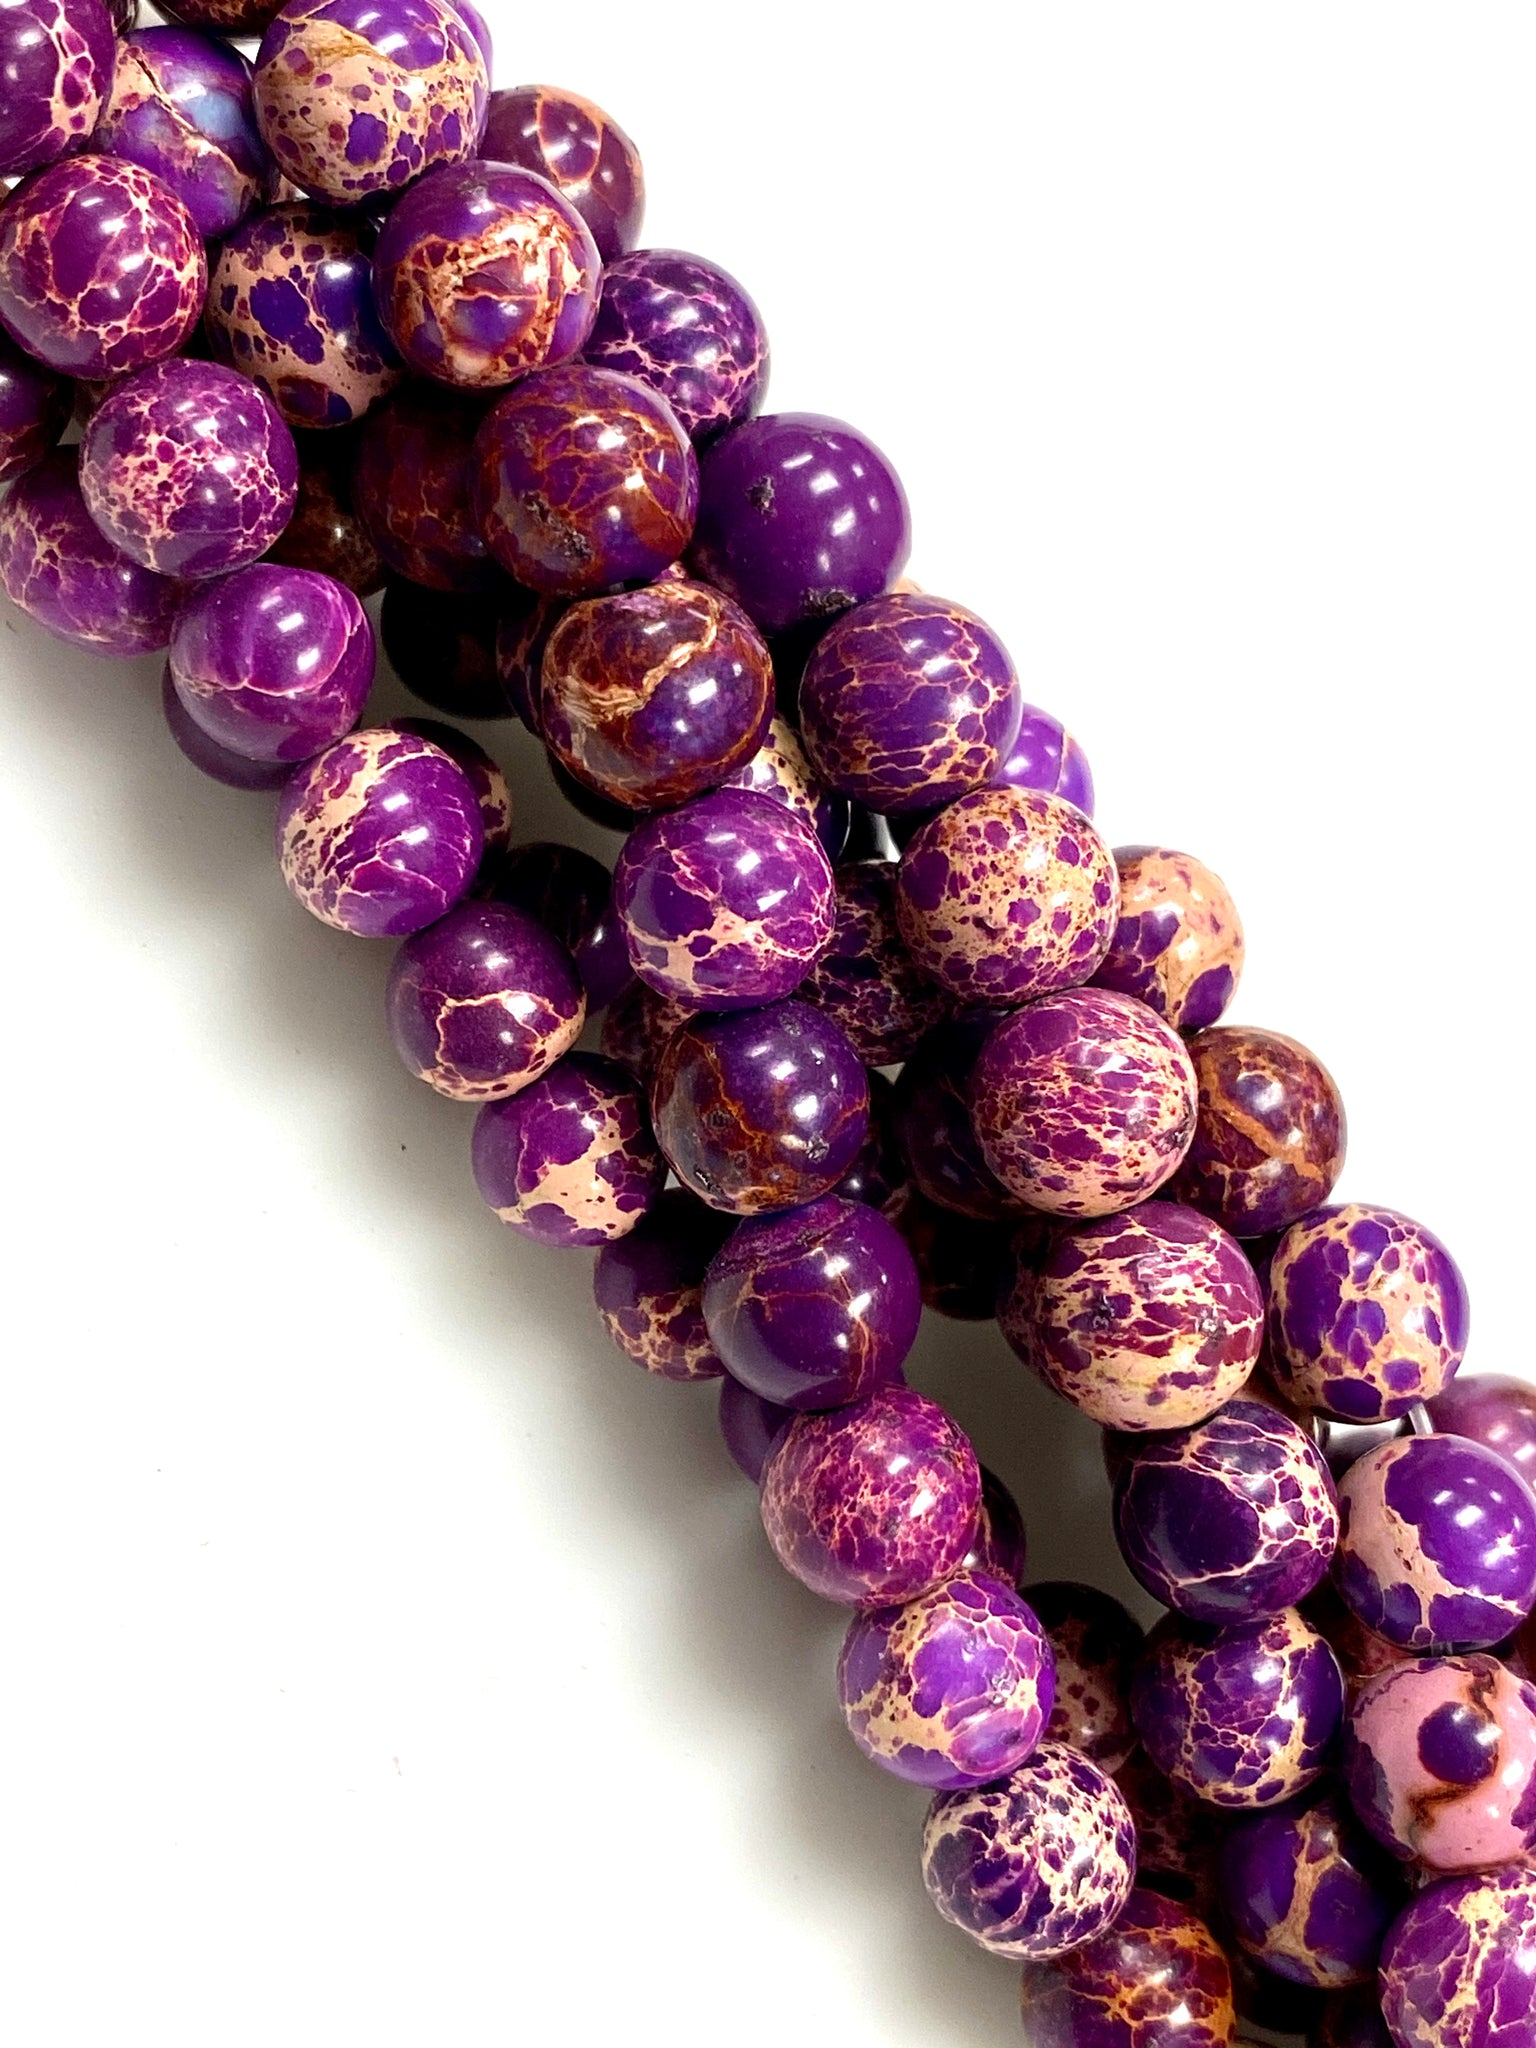 Natural Purple Jasper Beads / Faceted Round Shape Beads / Healing Energy Stone Beads / 8mm 2 Strand Gemstone Beads